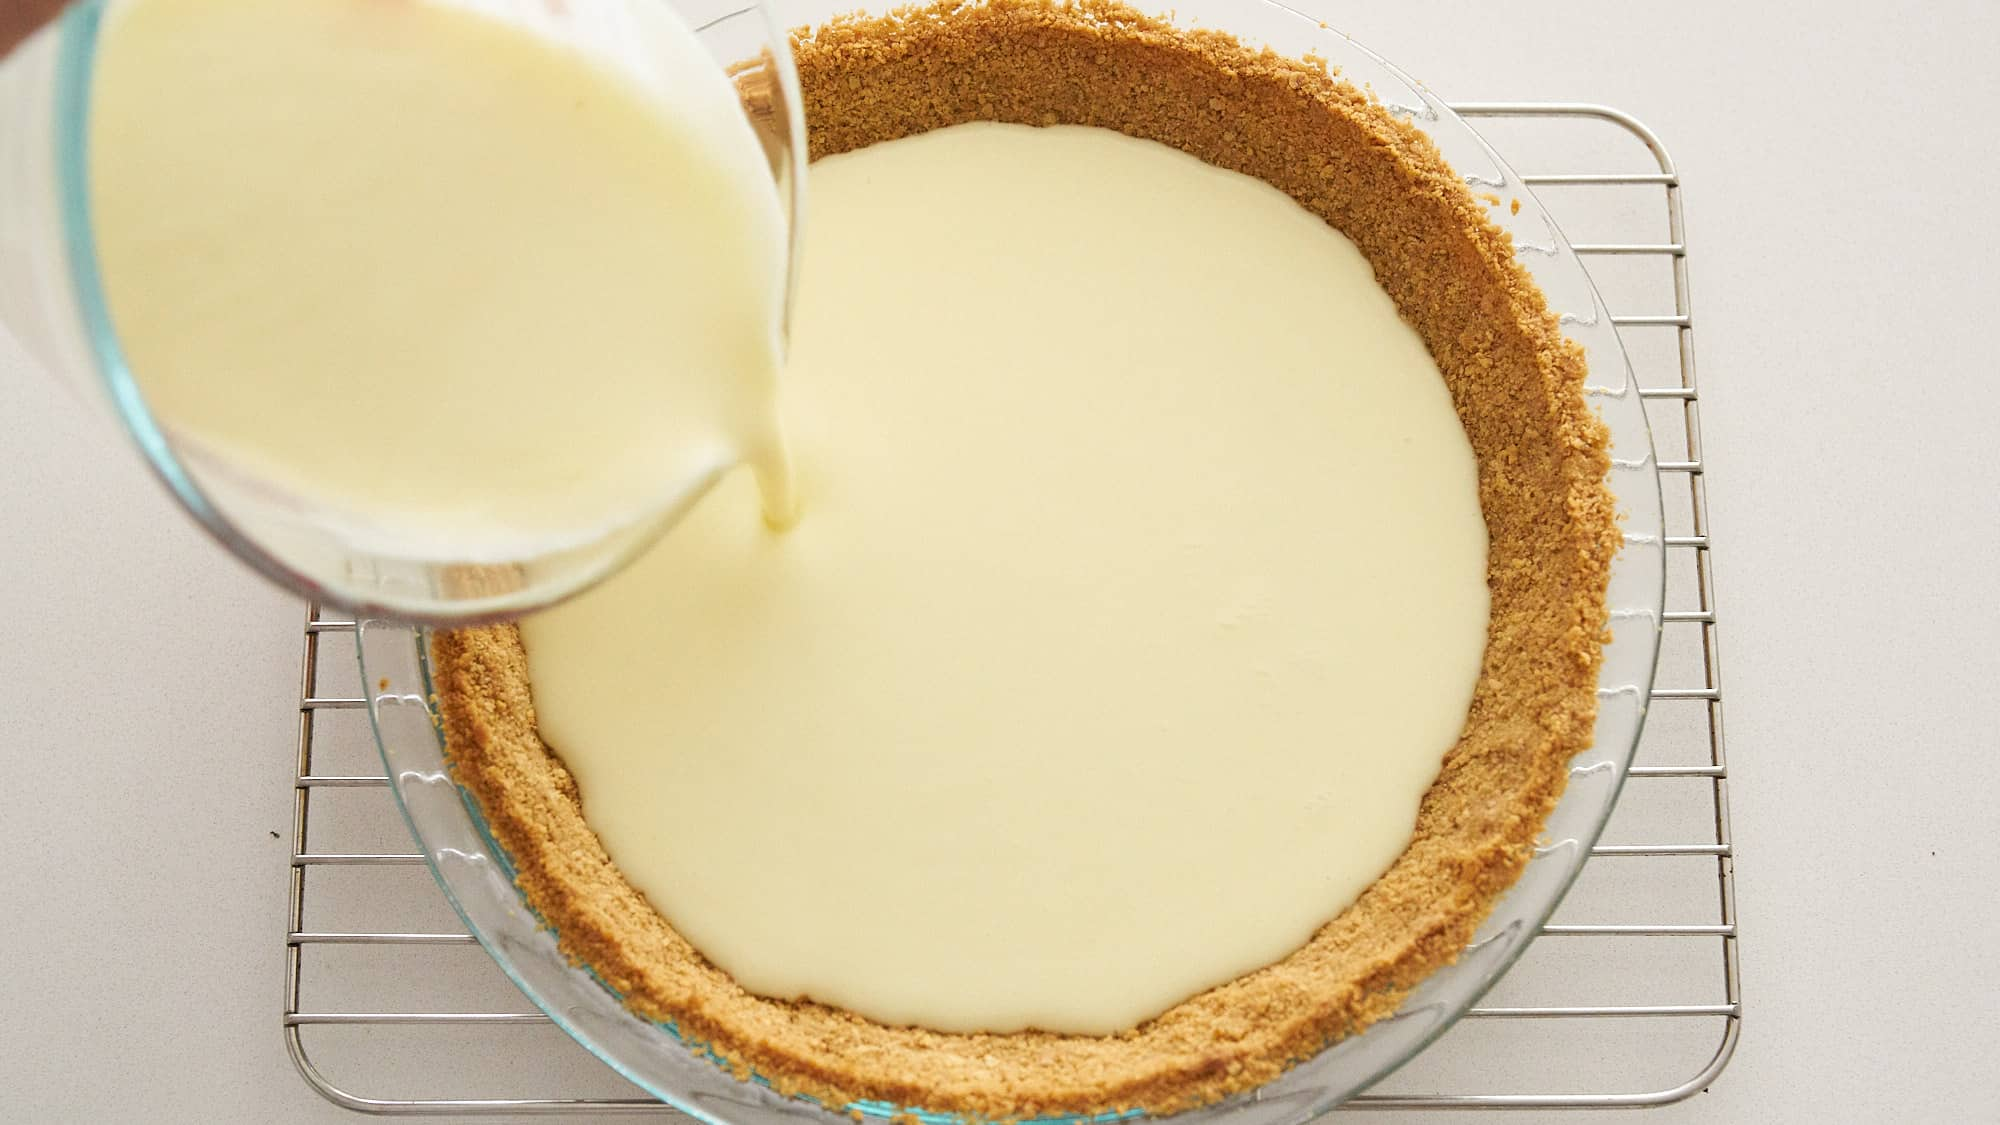 Filling the Key Lime Pie.